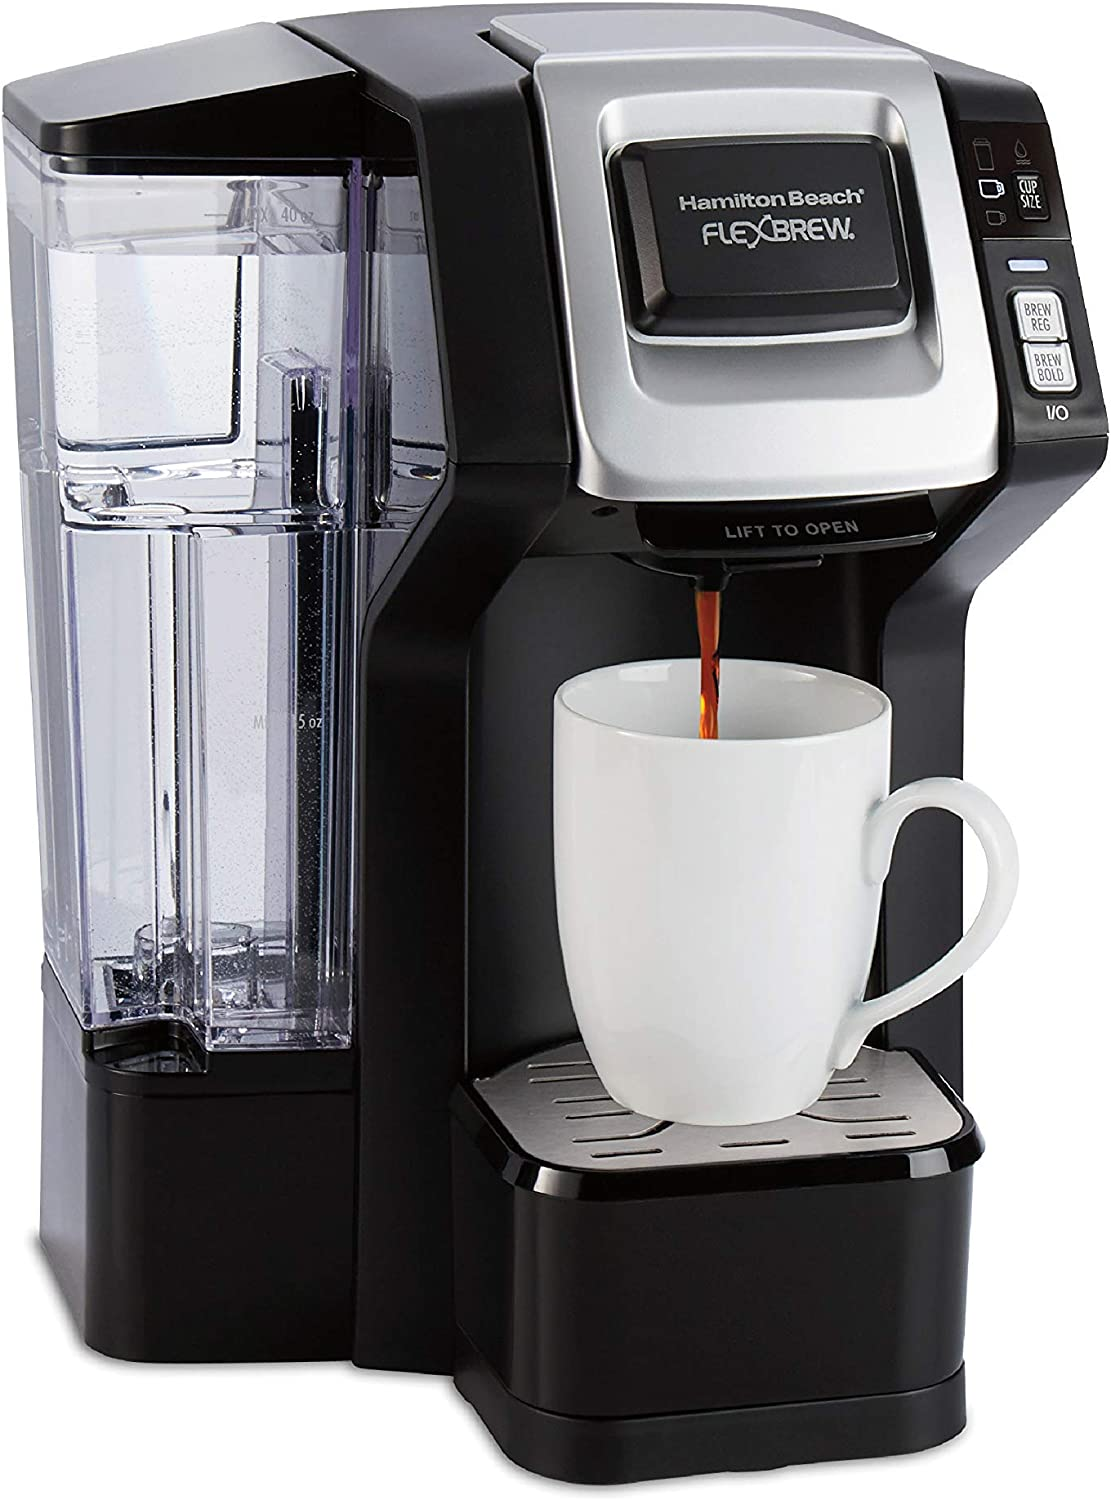 Hamilton Beach FlexBrew Single-Serve Maker with 40 oz. Reservoir Compatible with Pods or Ground Coffee, 3 Brewing Options, Black and Silver (49948), (Renewed)